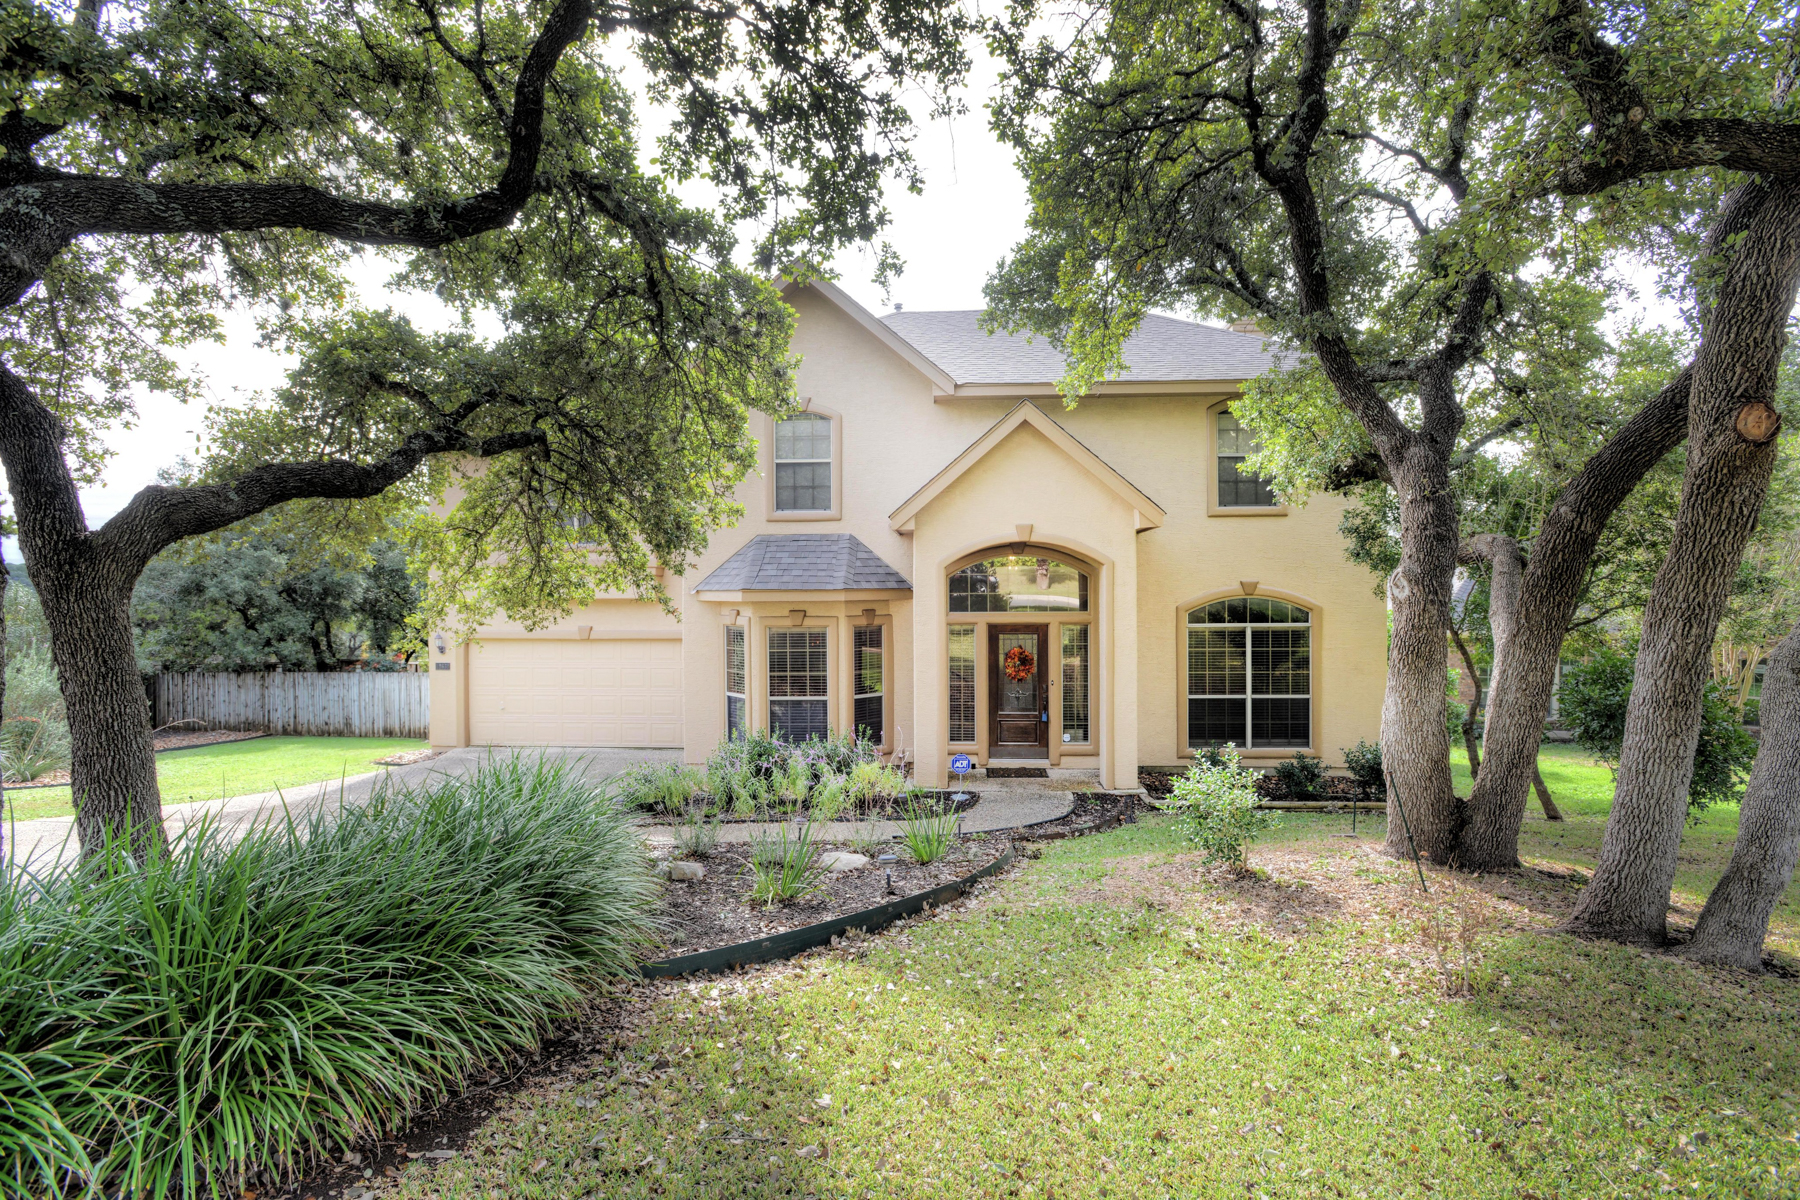 Property For Sale at Well-Kept Home in Crownridge